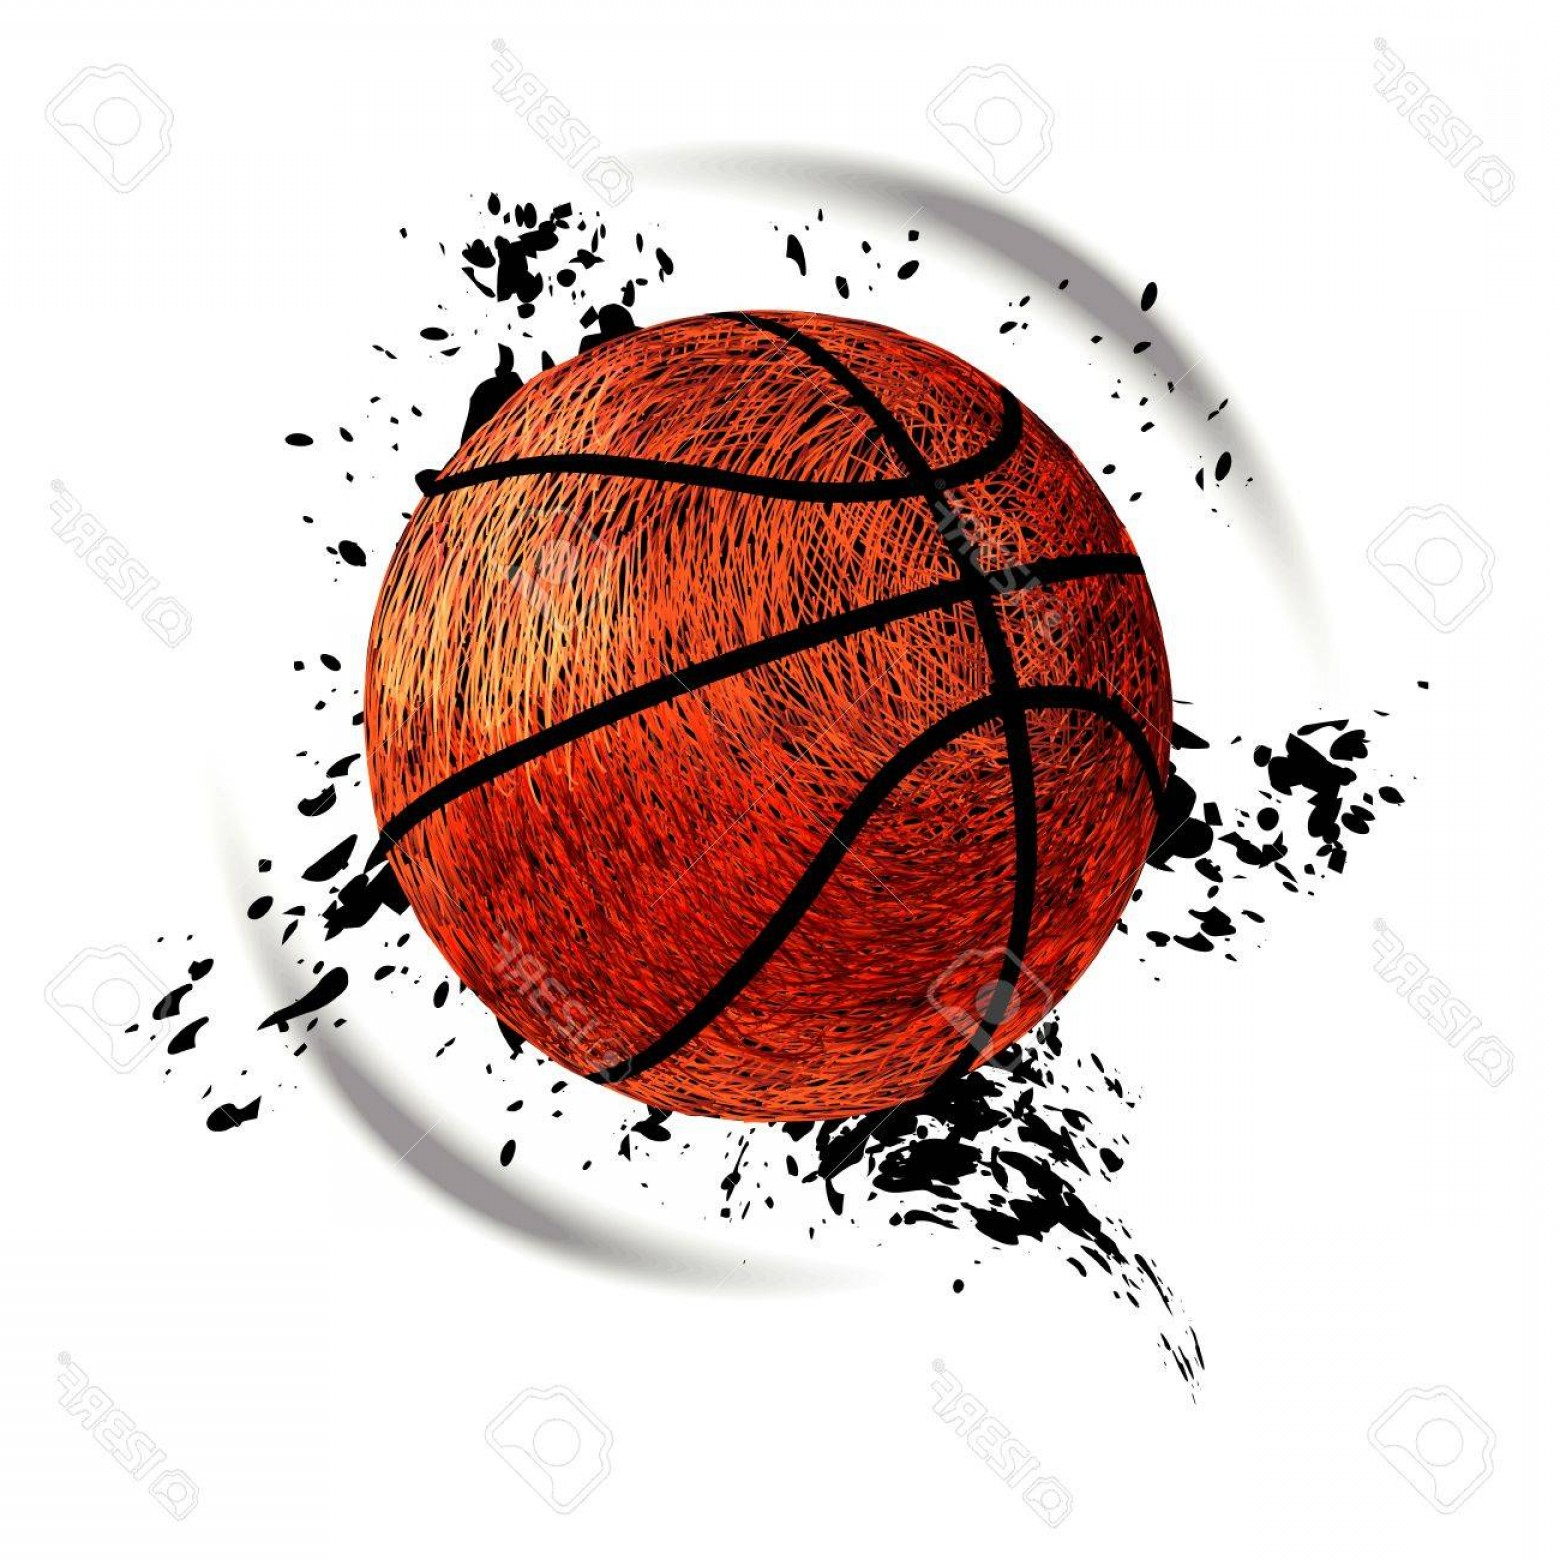 Grunge Basketball Vector: Photostock Vector Vector Illustration For Basketball Grunge Style A Lot Of Lines Spots Splashes